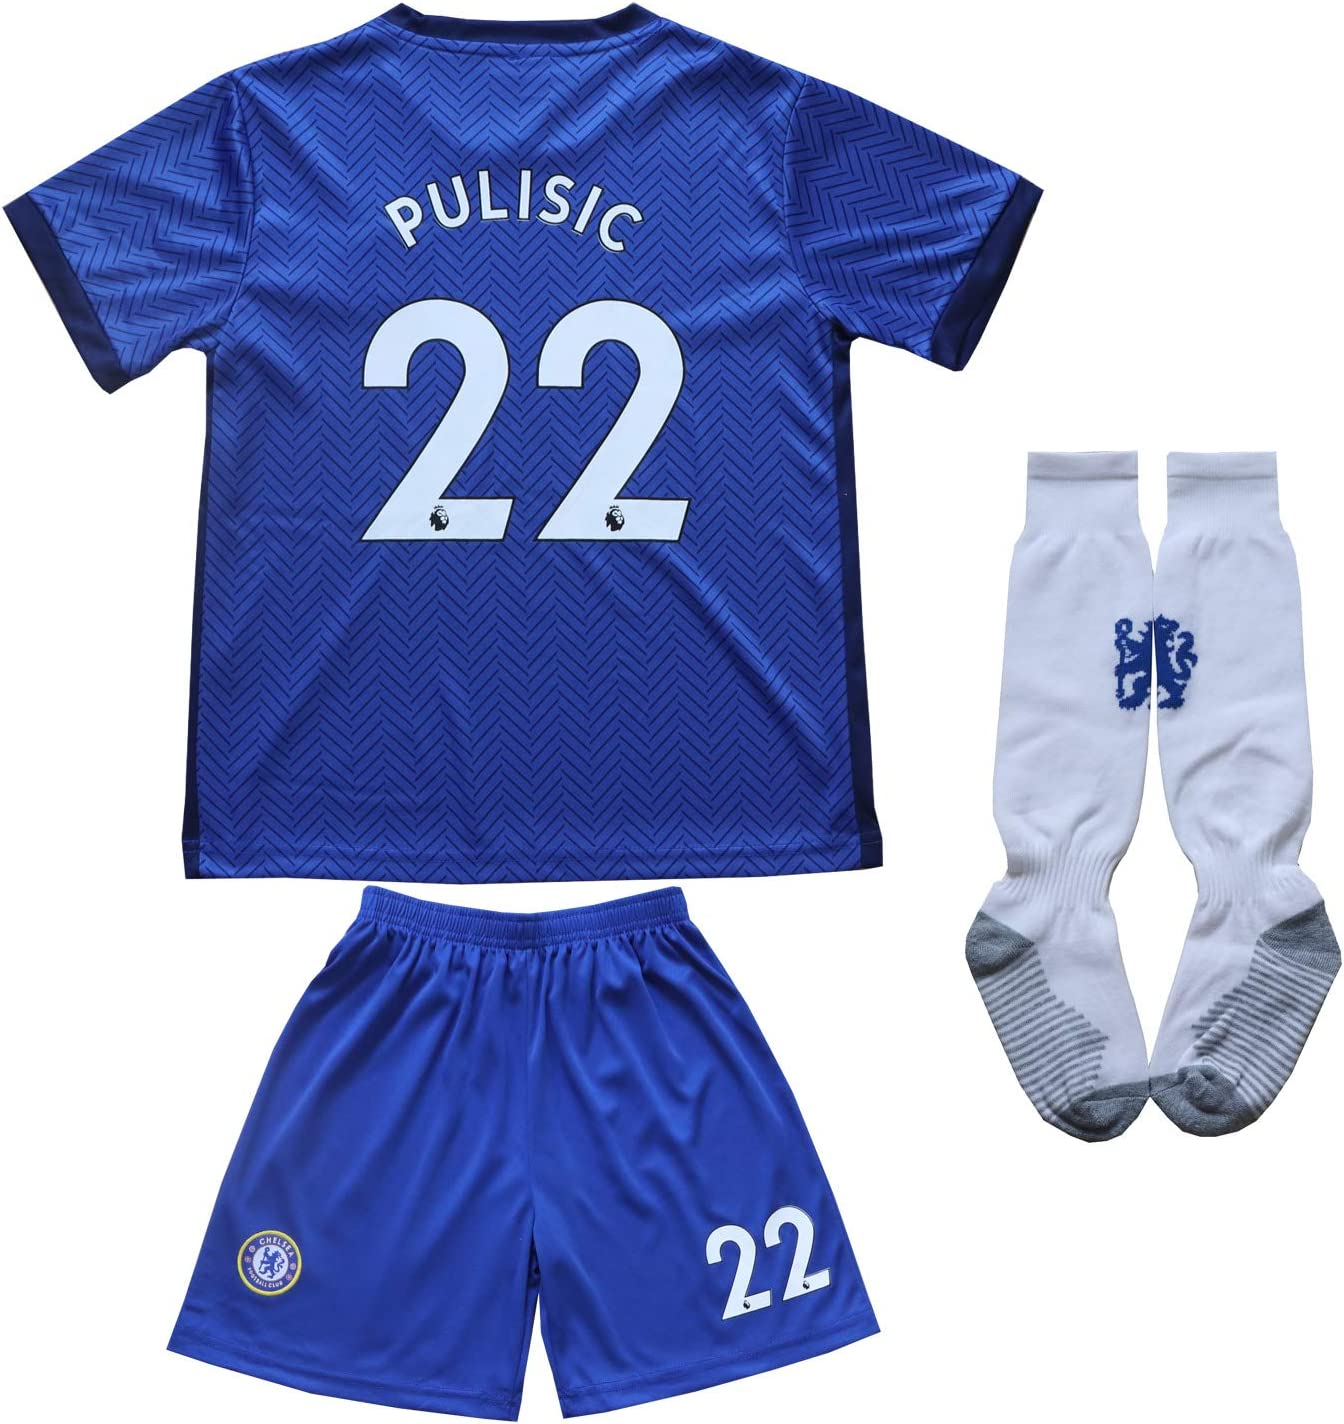 KID BOX 2020/2021 Chelsea Home Blue #22 Christian PULISIC Football Soccer Kids Jersey Shorts Socks Set Youth Sizes